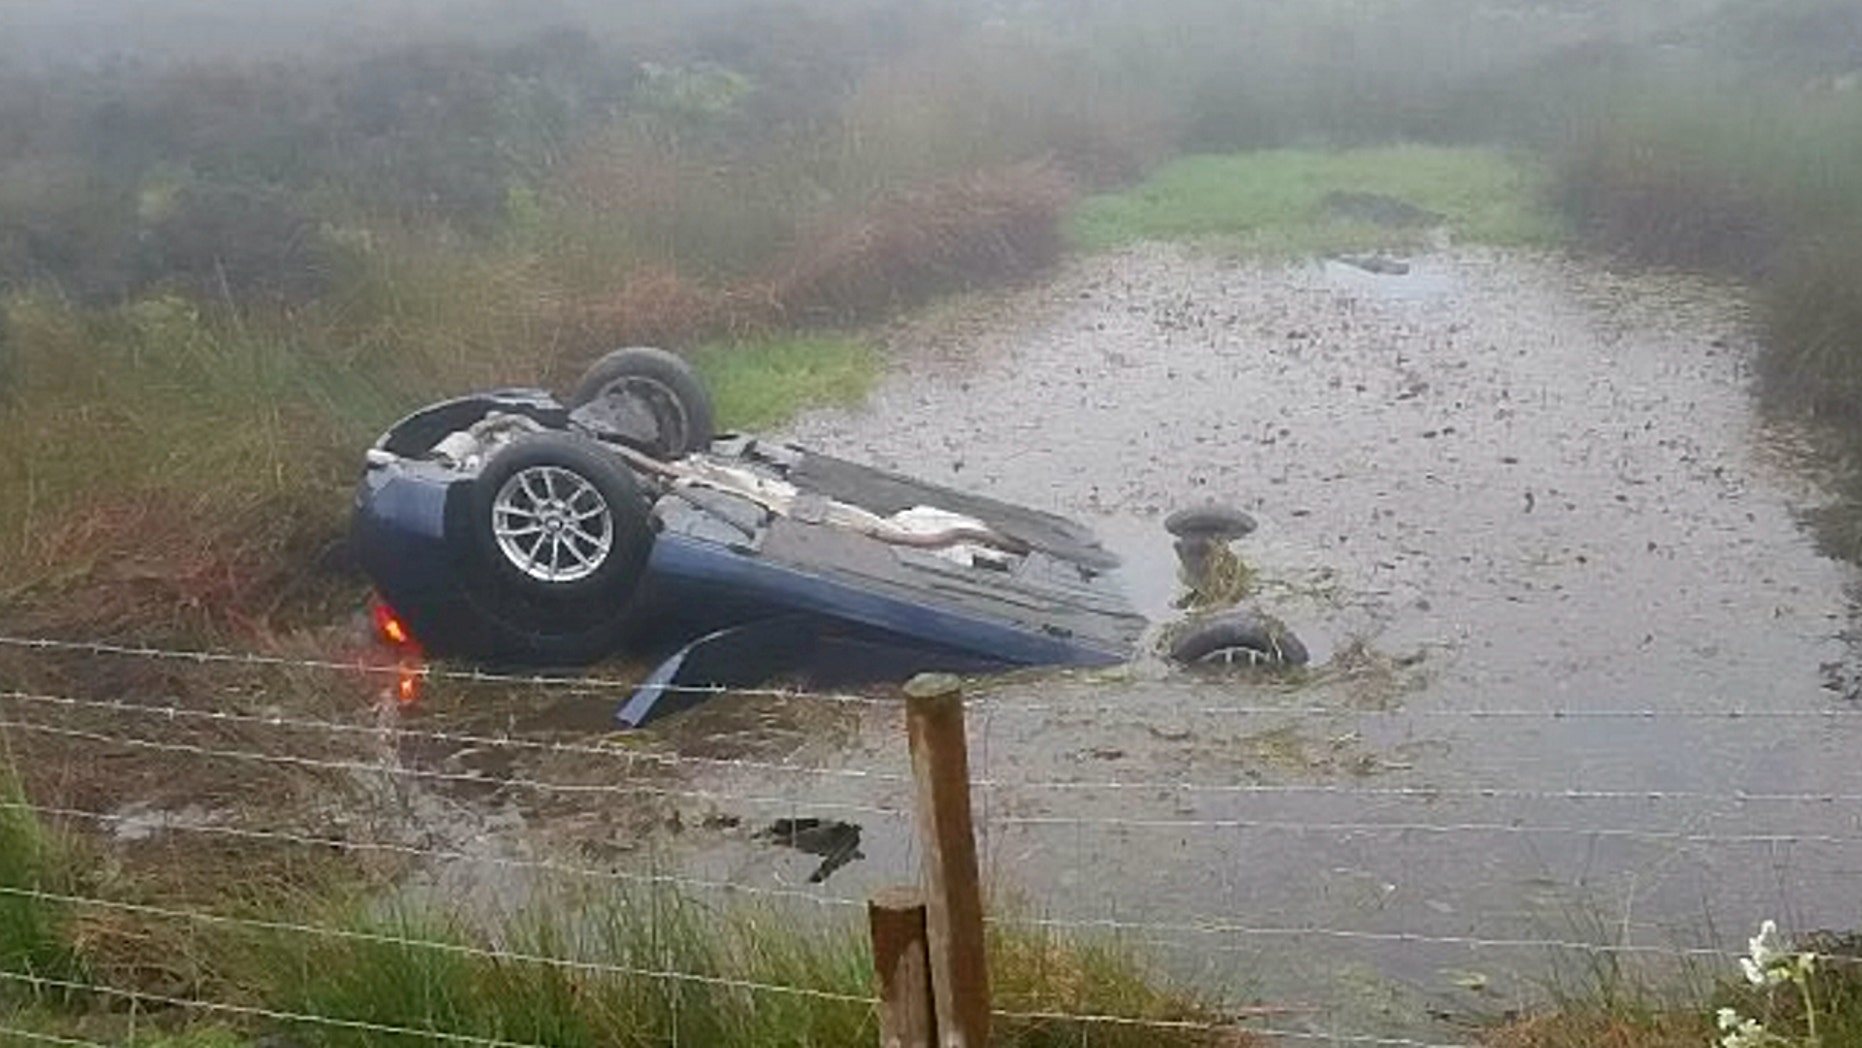 """A Sheffield, south Yorks., drink driver and his passenger had a miracle escape after he ploughed his flash BMW into a flooded farmer's field -- and the pair had to SWIM to safety. See Ross Parry story RPYBOOZED; A boozed-up teen BMW driver finished his night upside down in a pond while giving a pal a lift home after a few too many. Michael Mitchell, 19, and his passenger had to fight their way out of his BMW 1 Series hatchback after it plunged into a flooded field when he lost control of the vehicle. A court was told how foolish Mitchell had returned home after """"three or four pints"""" during a night out but went out in the early hours to give his friend a lift home. Chesterfield Magistrates Court, Derbs., was told how the teen crashed into the flooded field during misty weather on Longside Road, Holymoorside on May 26. However the pair miraculously managed to escape the submerged, upside down vehicle and flagged a taxi home."""